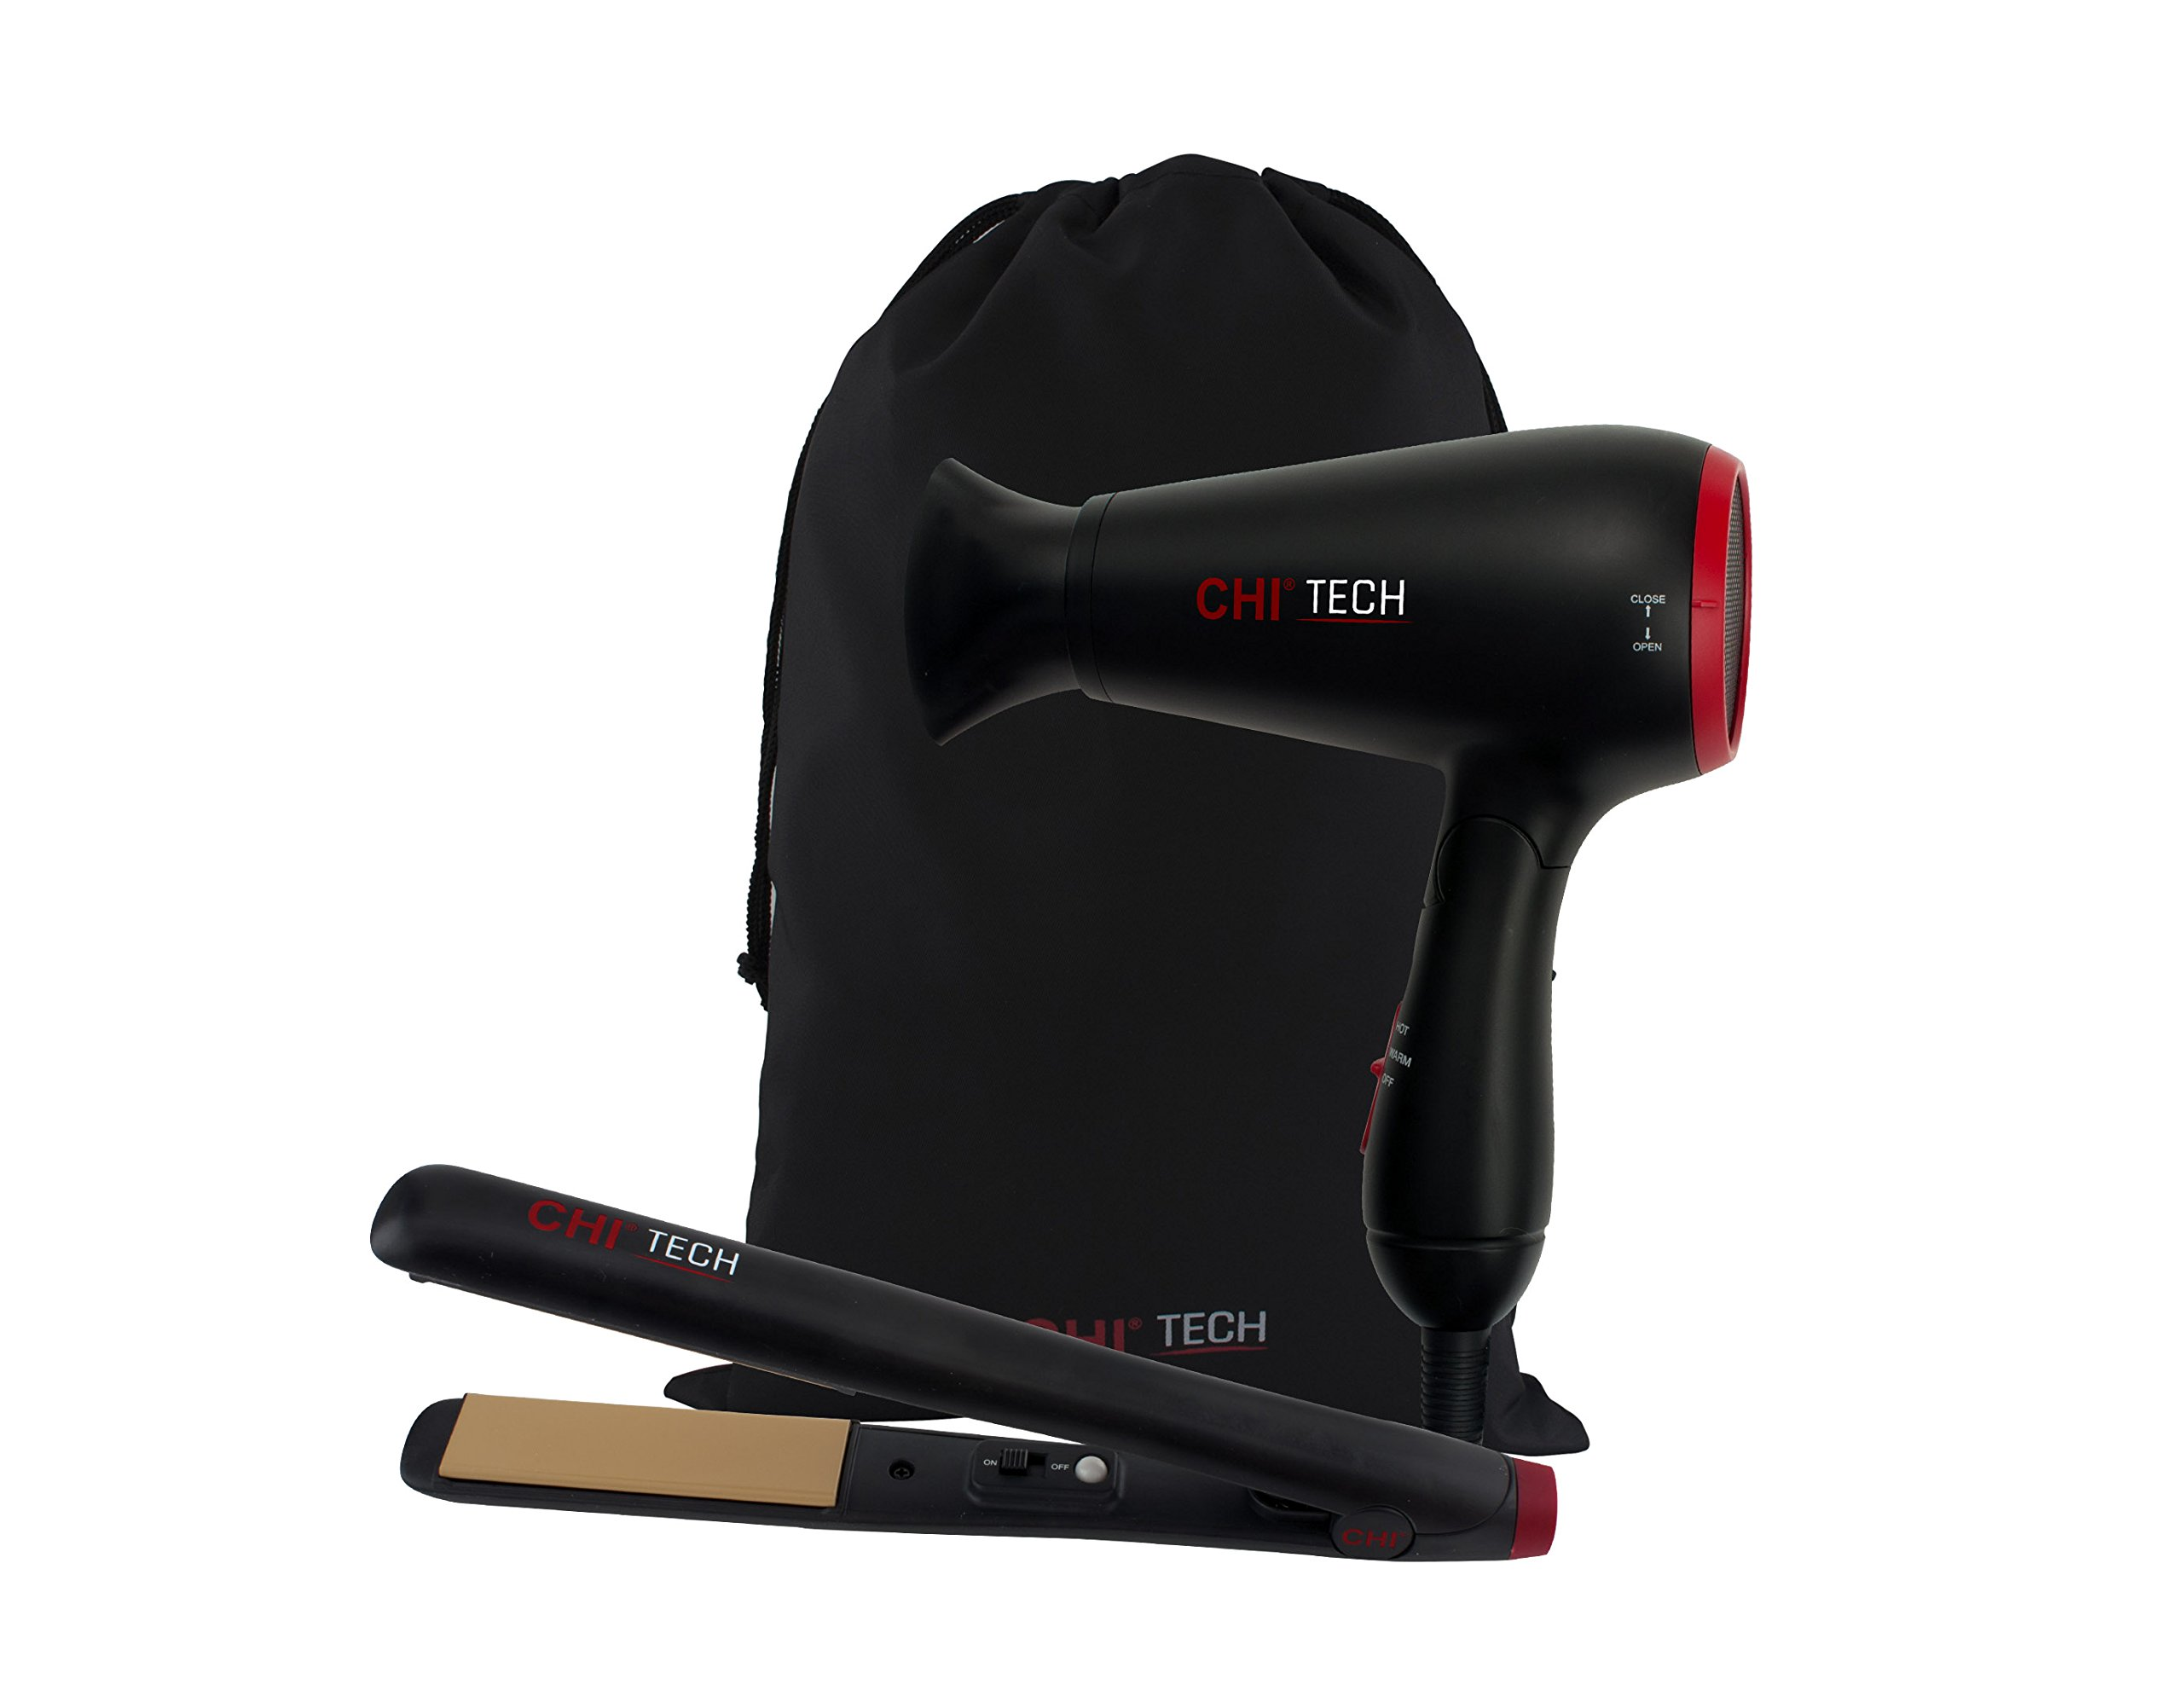 CHI Tech Hair Dryer and Ceramic Hairstyling Iron - 2 Piece Travel Set - 71xU2UEOBmL - CHI Tech Hair Dryer and Ceramic Hairstyling Iron – 2 Piece Travel Set